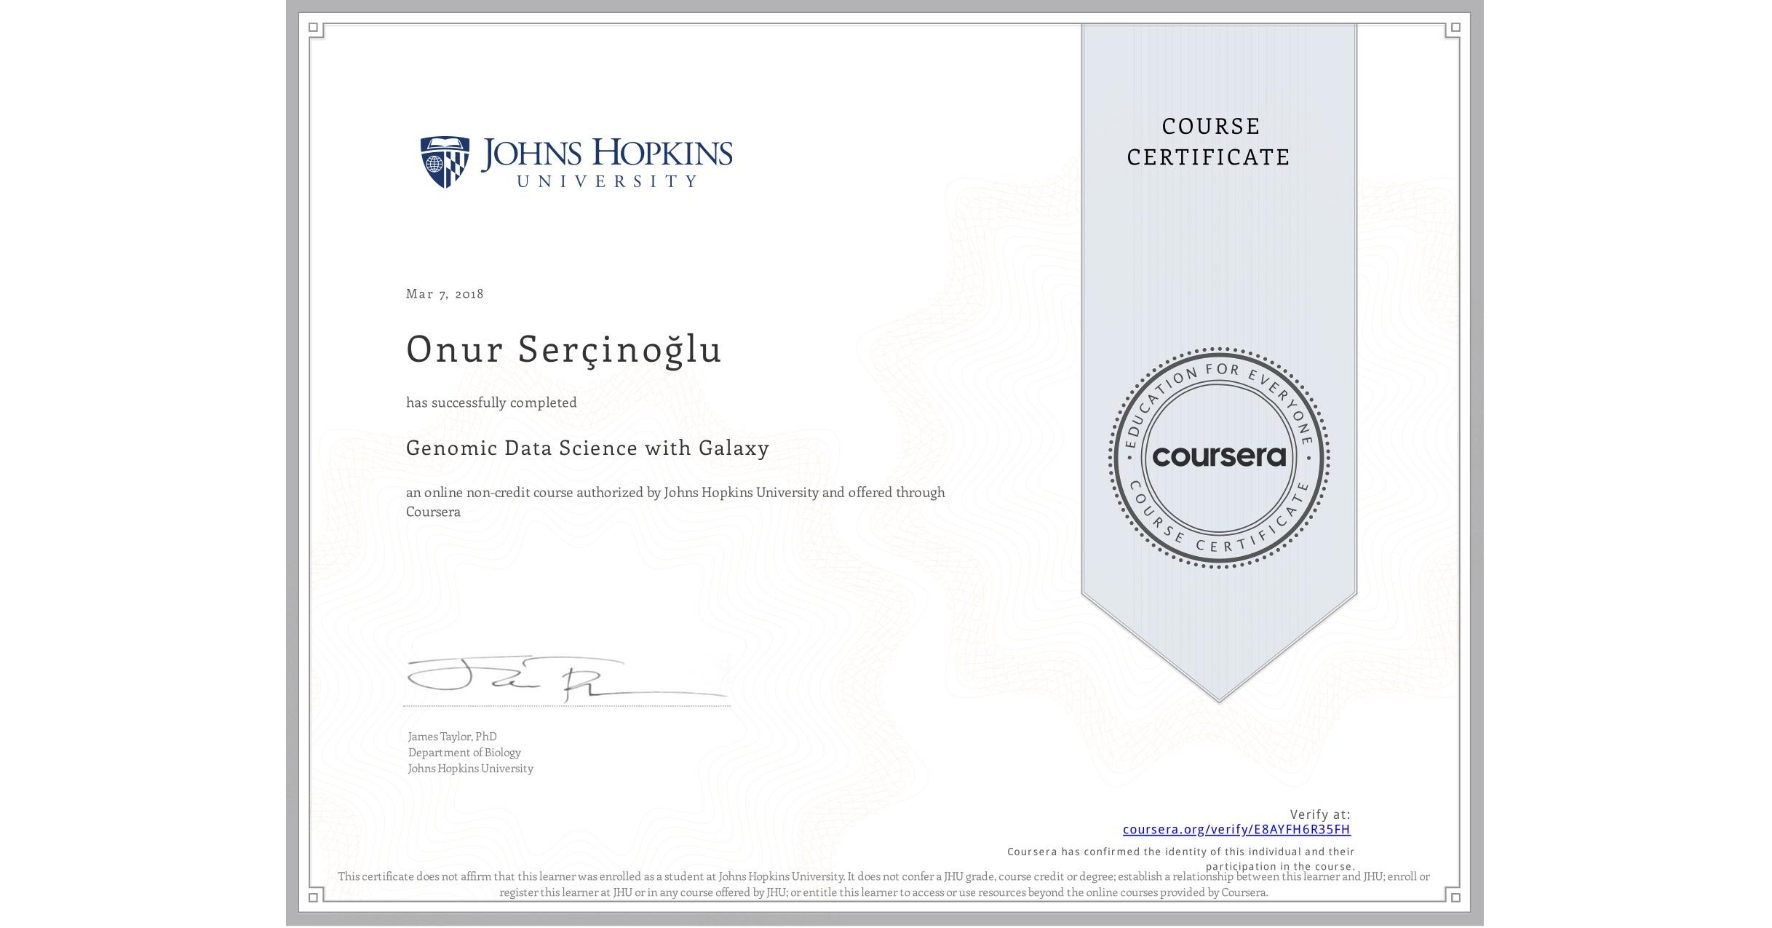 View certificate for Onur Serçinoğlu, Genomic Data Science with Galaxy, an online non-credit course authorized by Johns Hopkins University and offered through Coursera